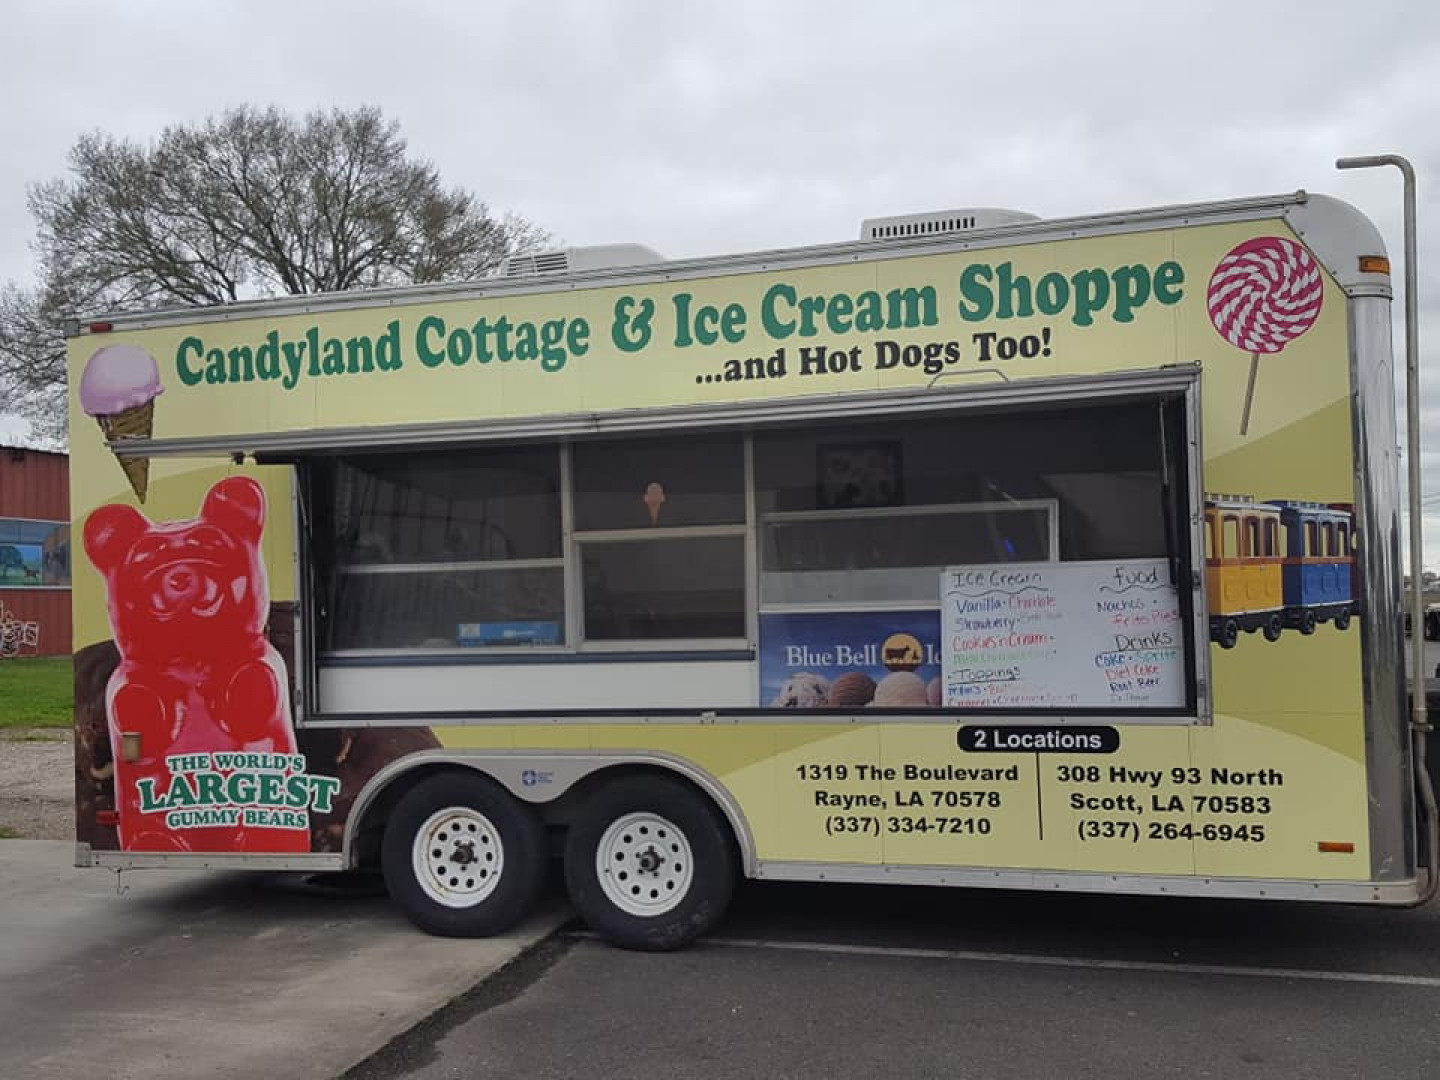 Candyland-on-Wheels events include